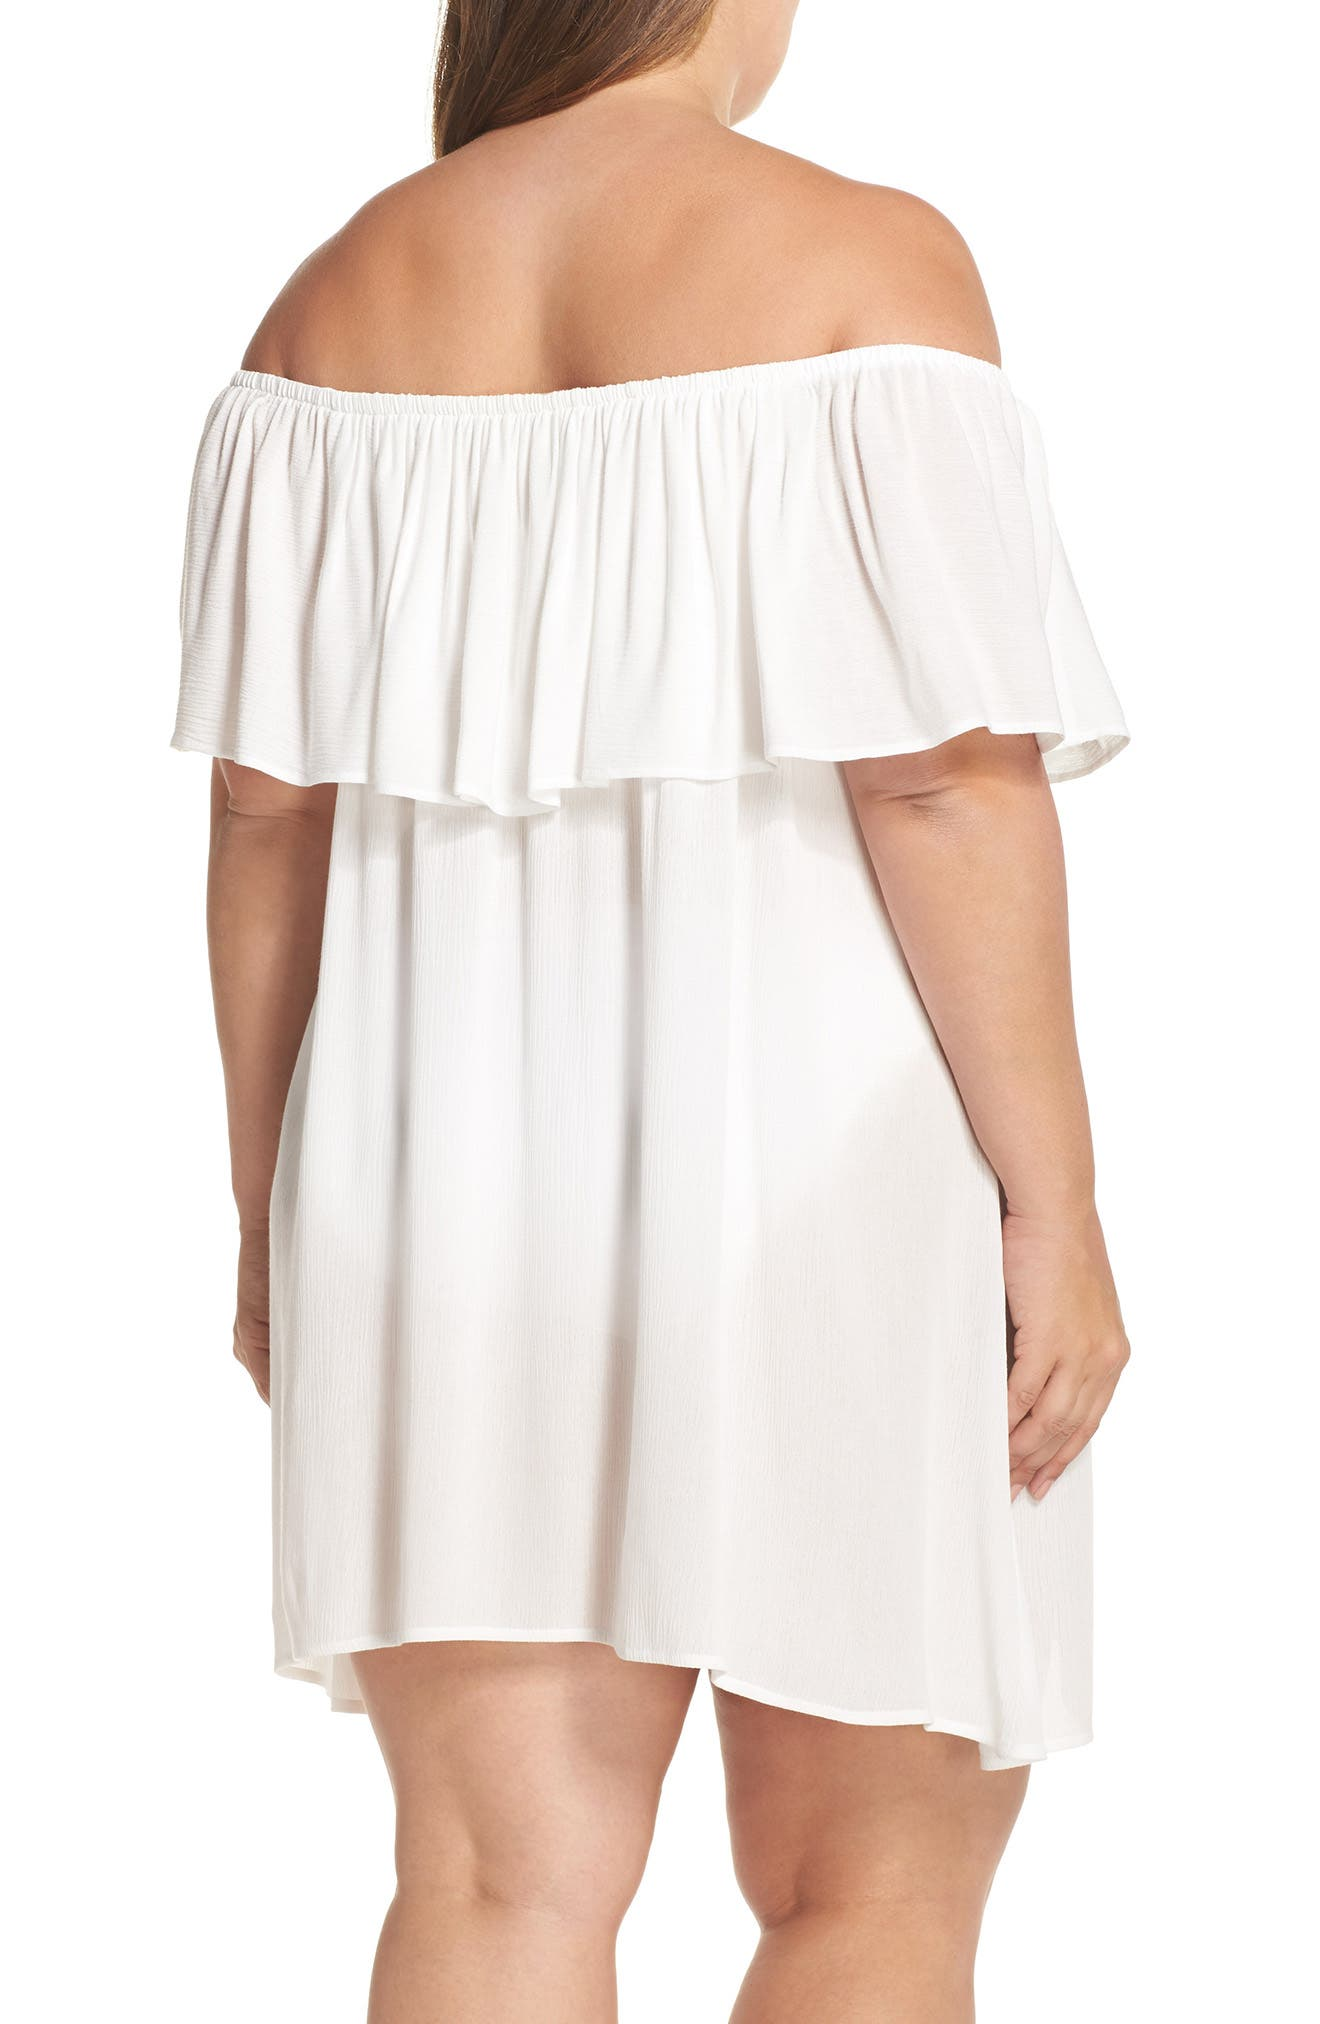 Alternate Image 2  - Becca Etc. Southern Belle Off the Shoulder Cover-Up Dress (Plus Size)